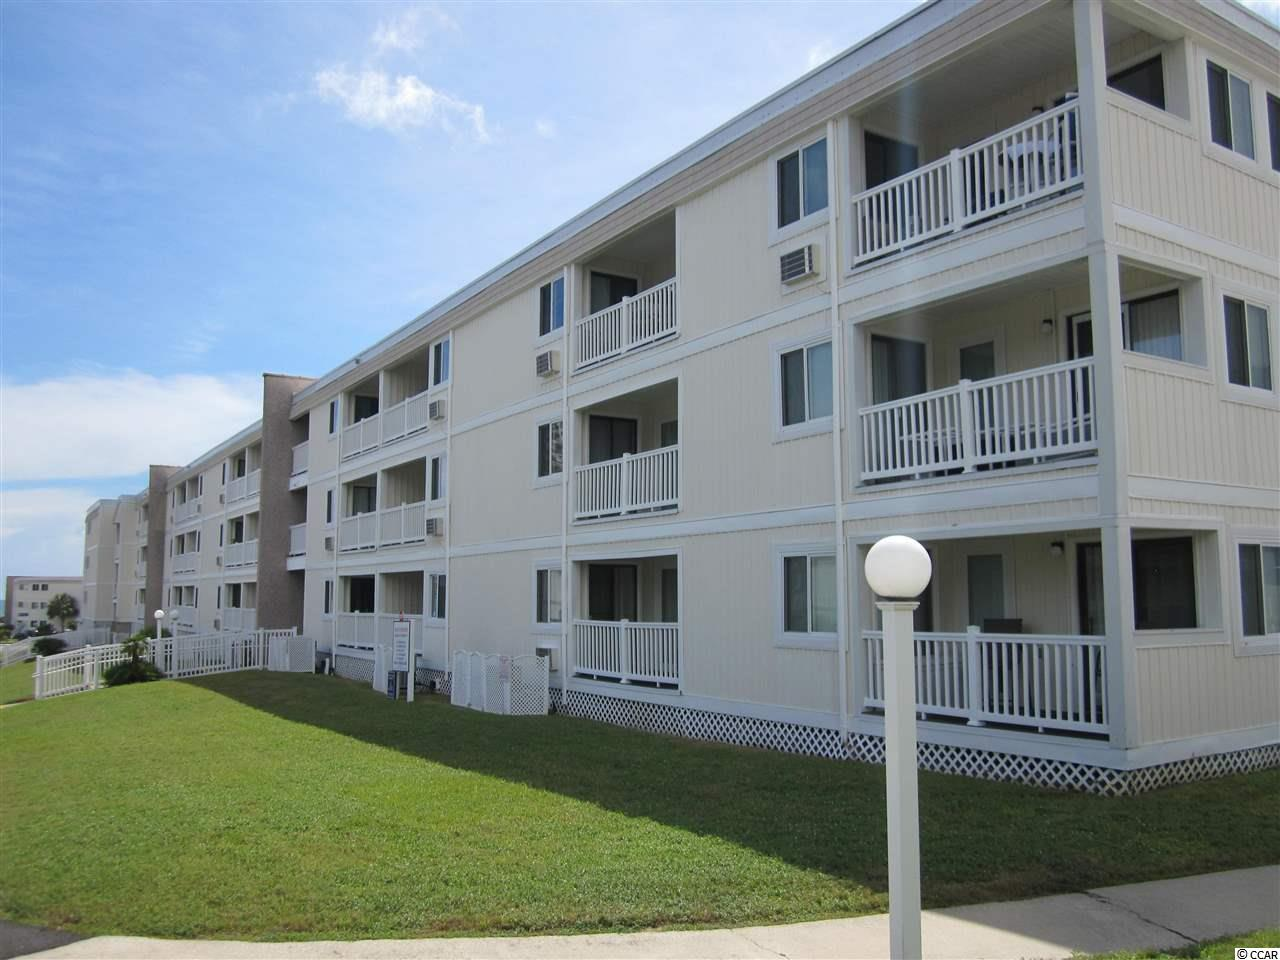 Beautifully updated and exceptionally well-kept describes this wonderful two bedroom, two full bathroom fully furnished ocean view condo at the popular A Place AT The Beach V complex located in the Shore Drive area.  Ready to use as your own beach getaway or 2nd home/vacation rental combination.  Two outdoor pools with one being direct oceanfront.  Grilling/picnic area.   Right across the street from The Straw Market with shopping and restaurant and short drive to Tanger Factory Outlets, Arcadian Shores Golf Course, Broadway At The Beach, Barefoot Landing and many great restaurants!  Don't hesitate on this one - call today!  All the measurements are approximate and not guaranteed. The buyer is responsible for all verification.